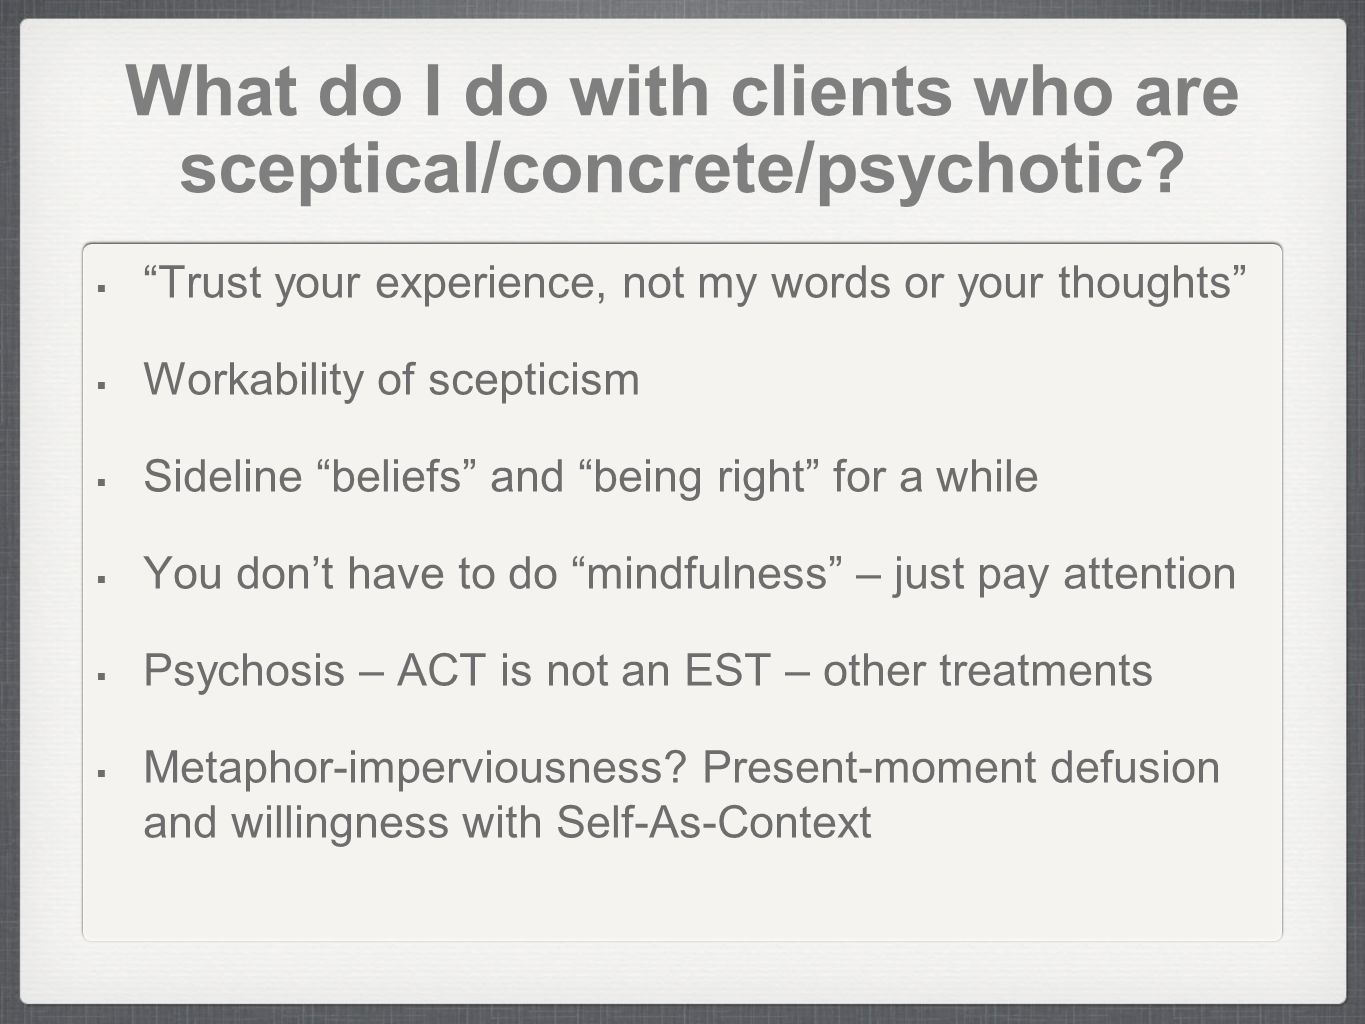 What do I do with clients who are sceptical/concrete/psychotic